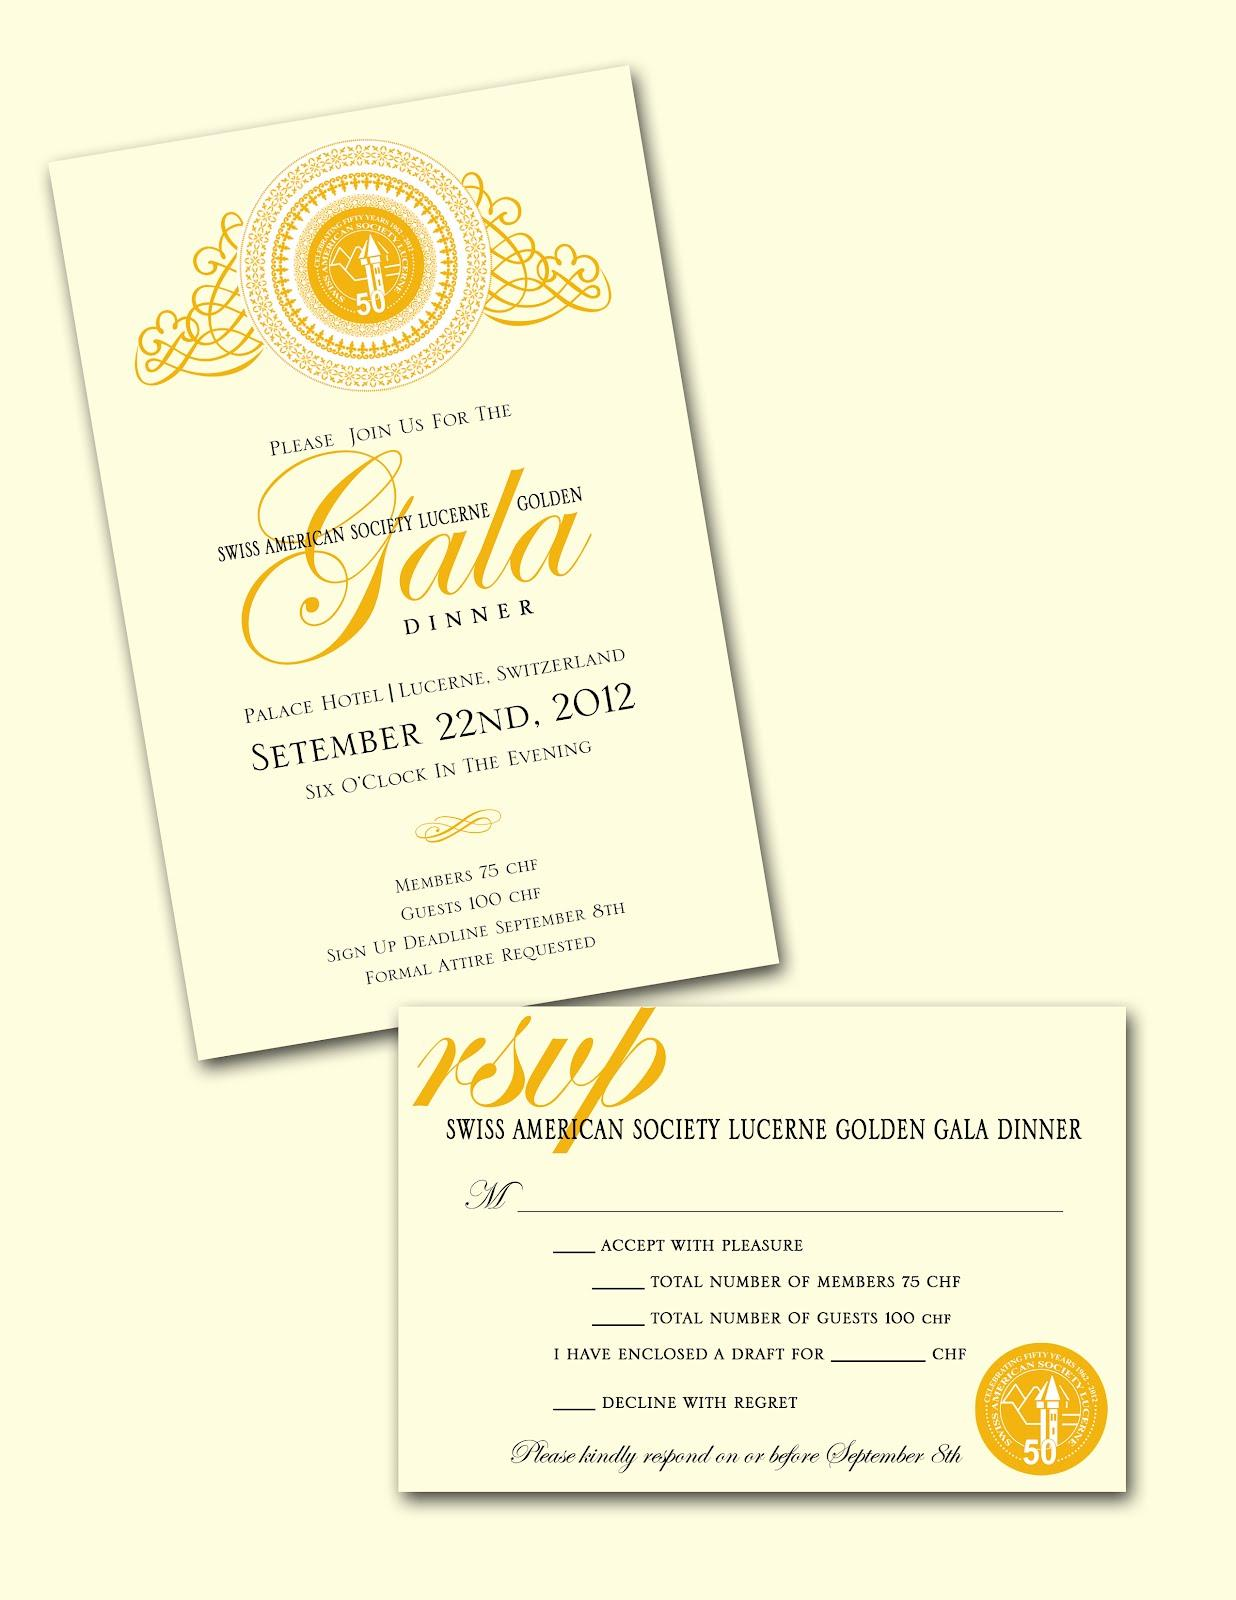 Gala Dinner Invitation Samples